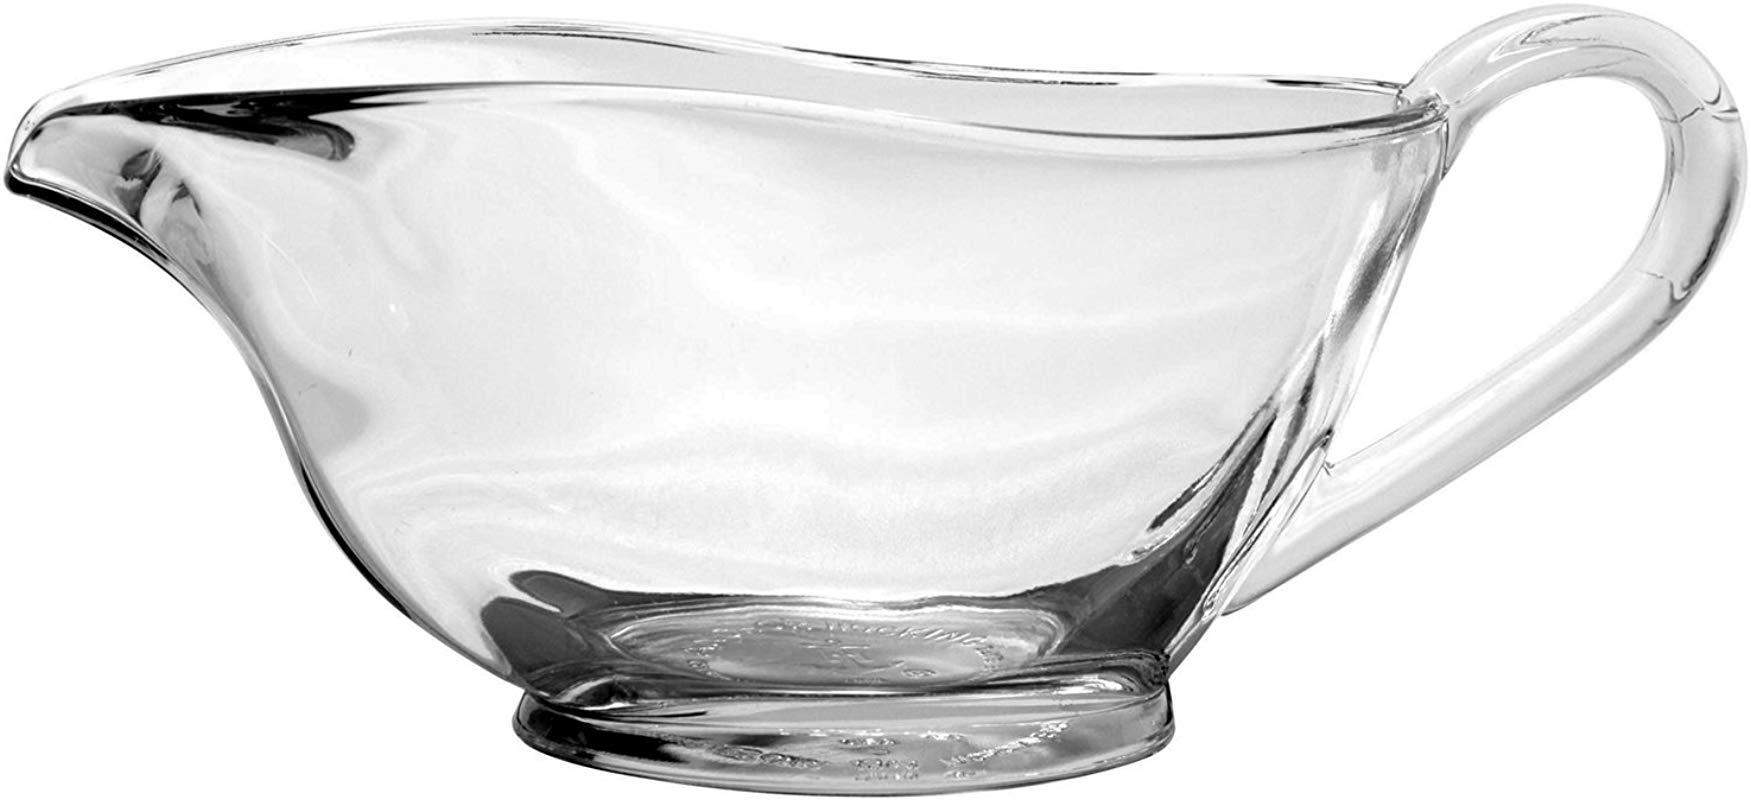 Anchor Hocking Presence Gravy Boat Glass 16 Ounce